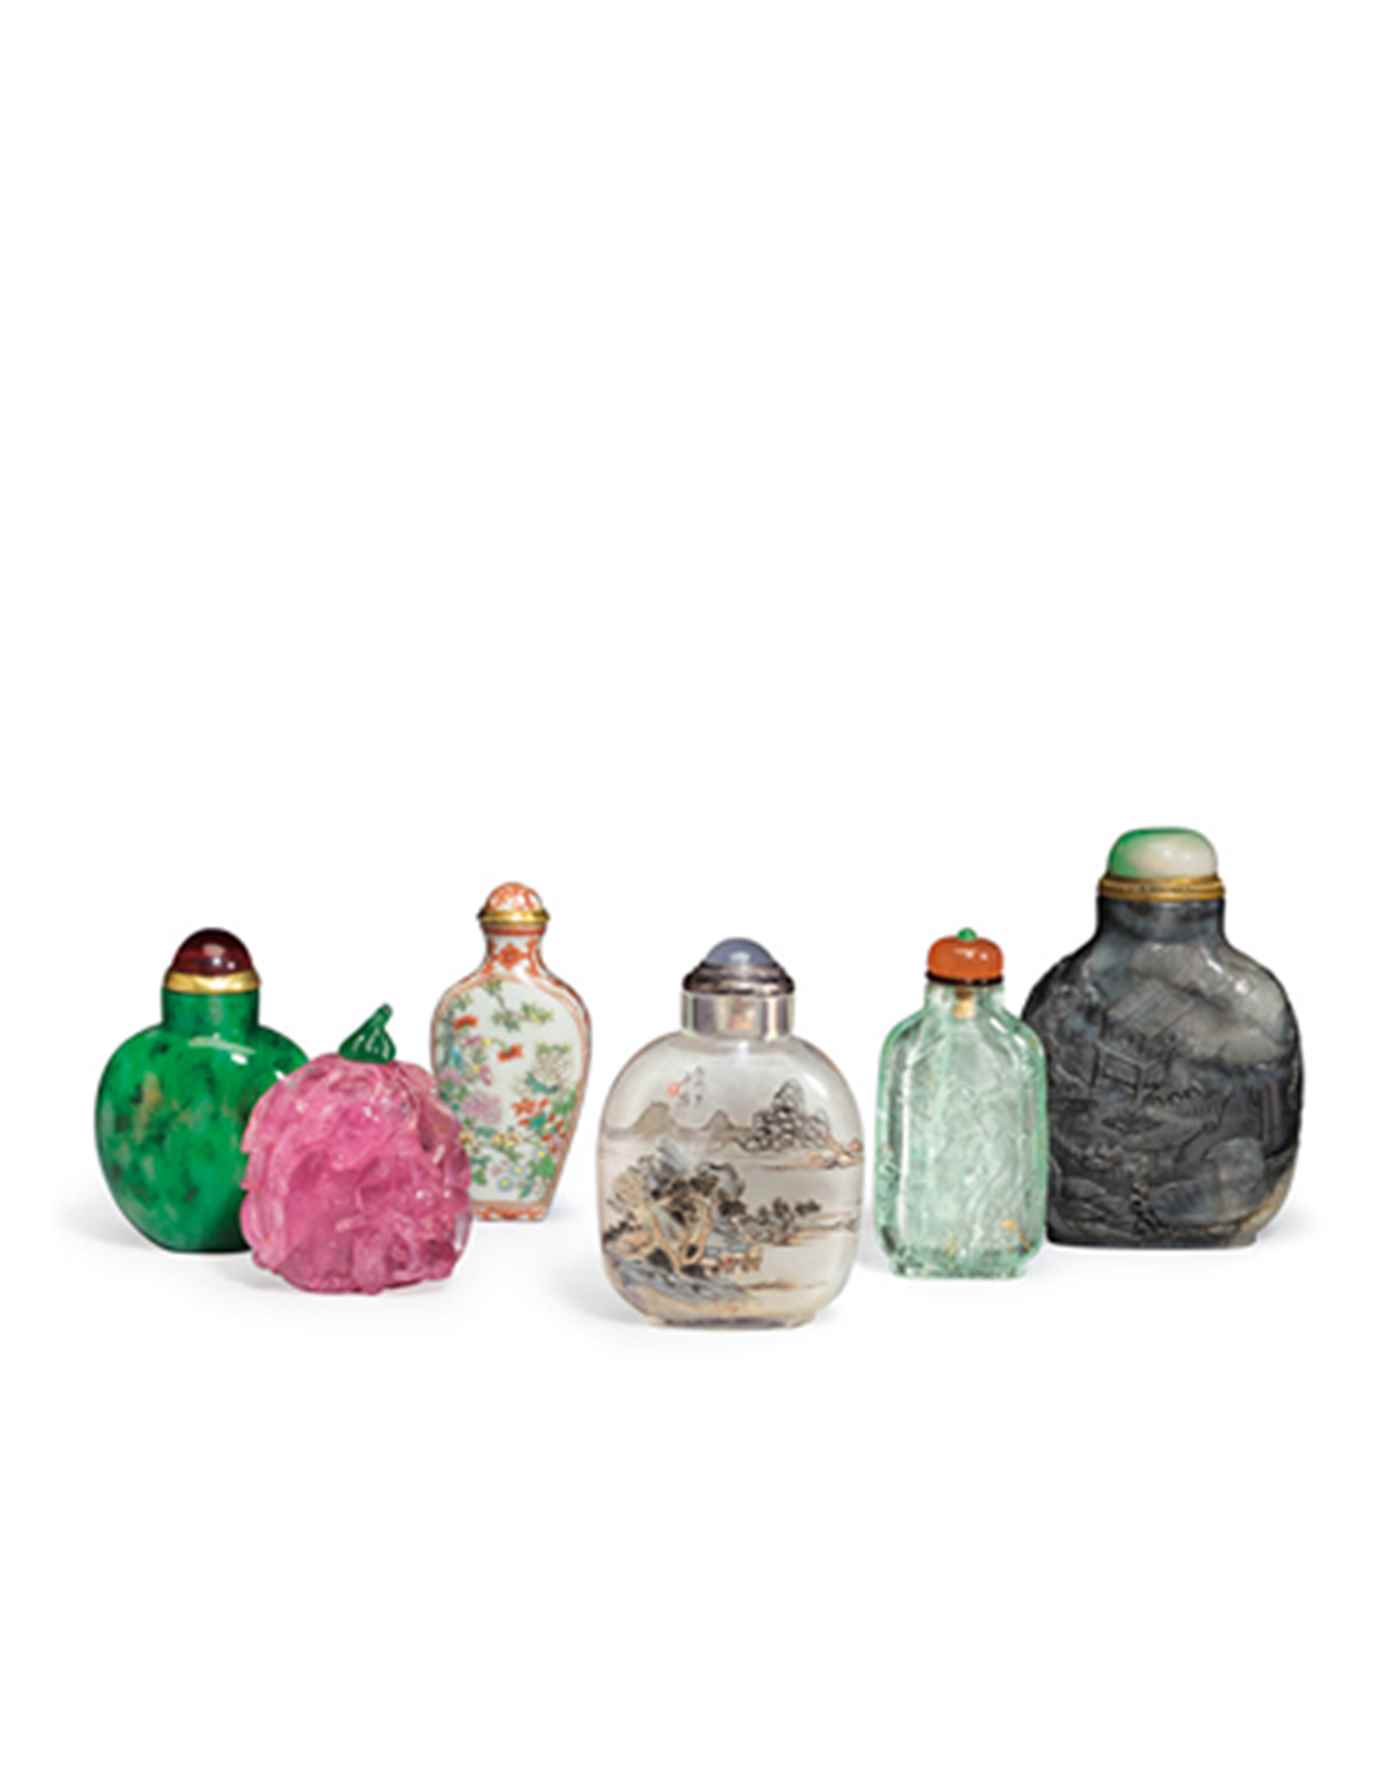 The Ruth and Carl Barron Collection of Fine Chinese Snuff Bottles Part V